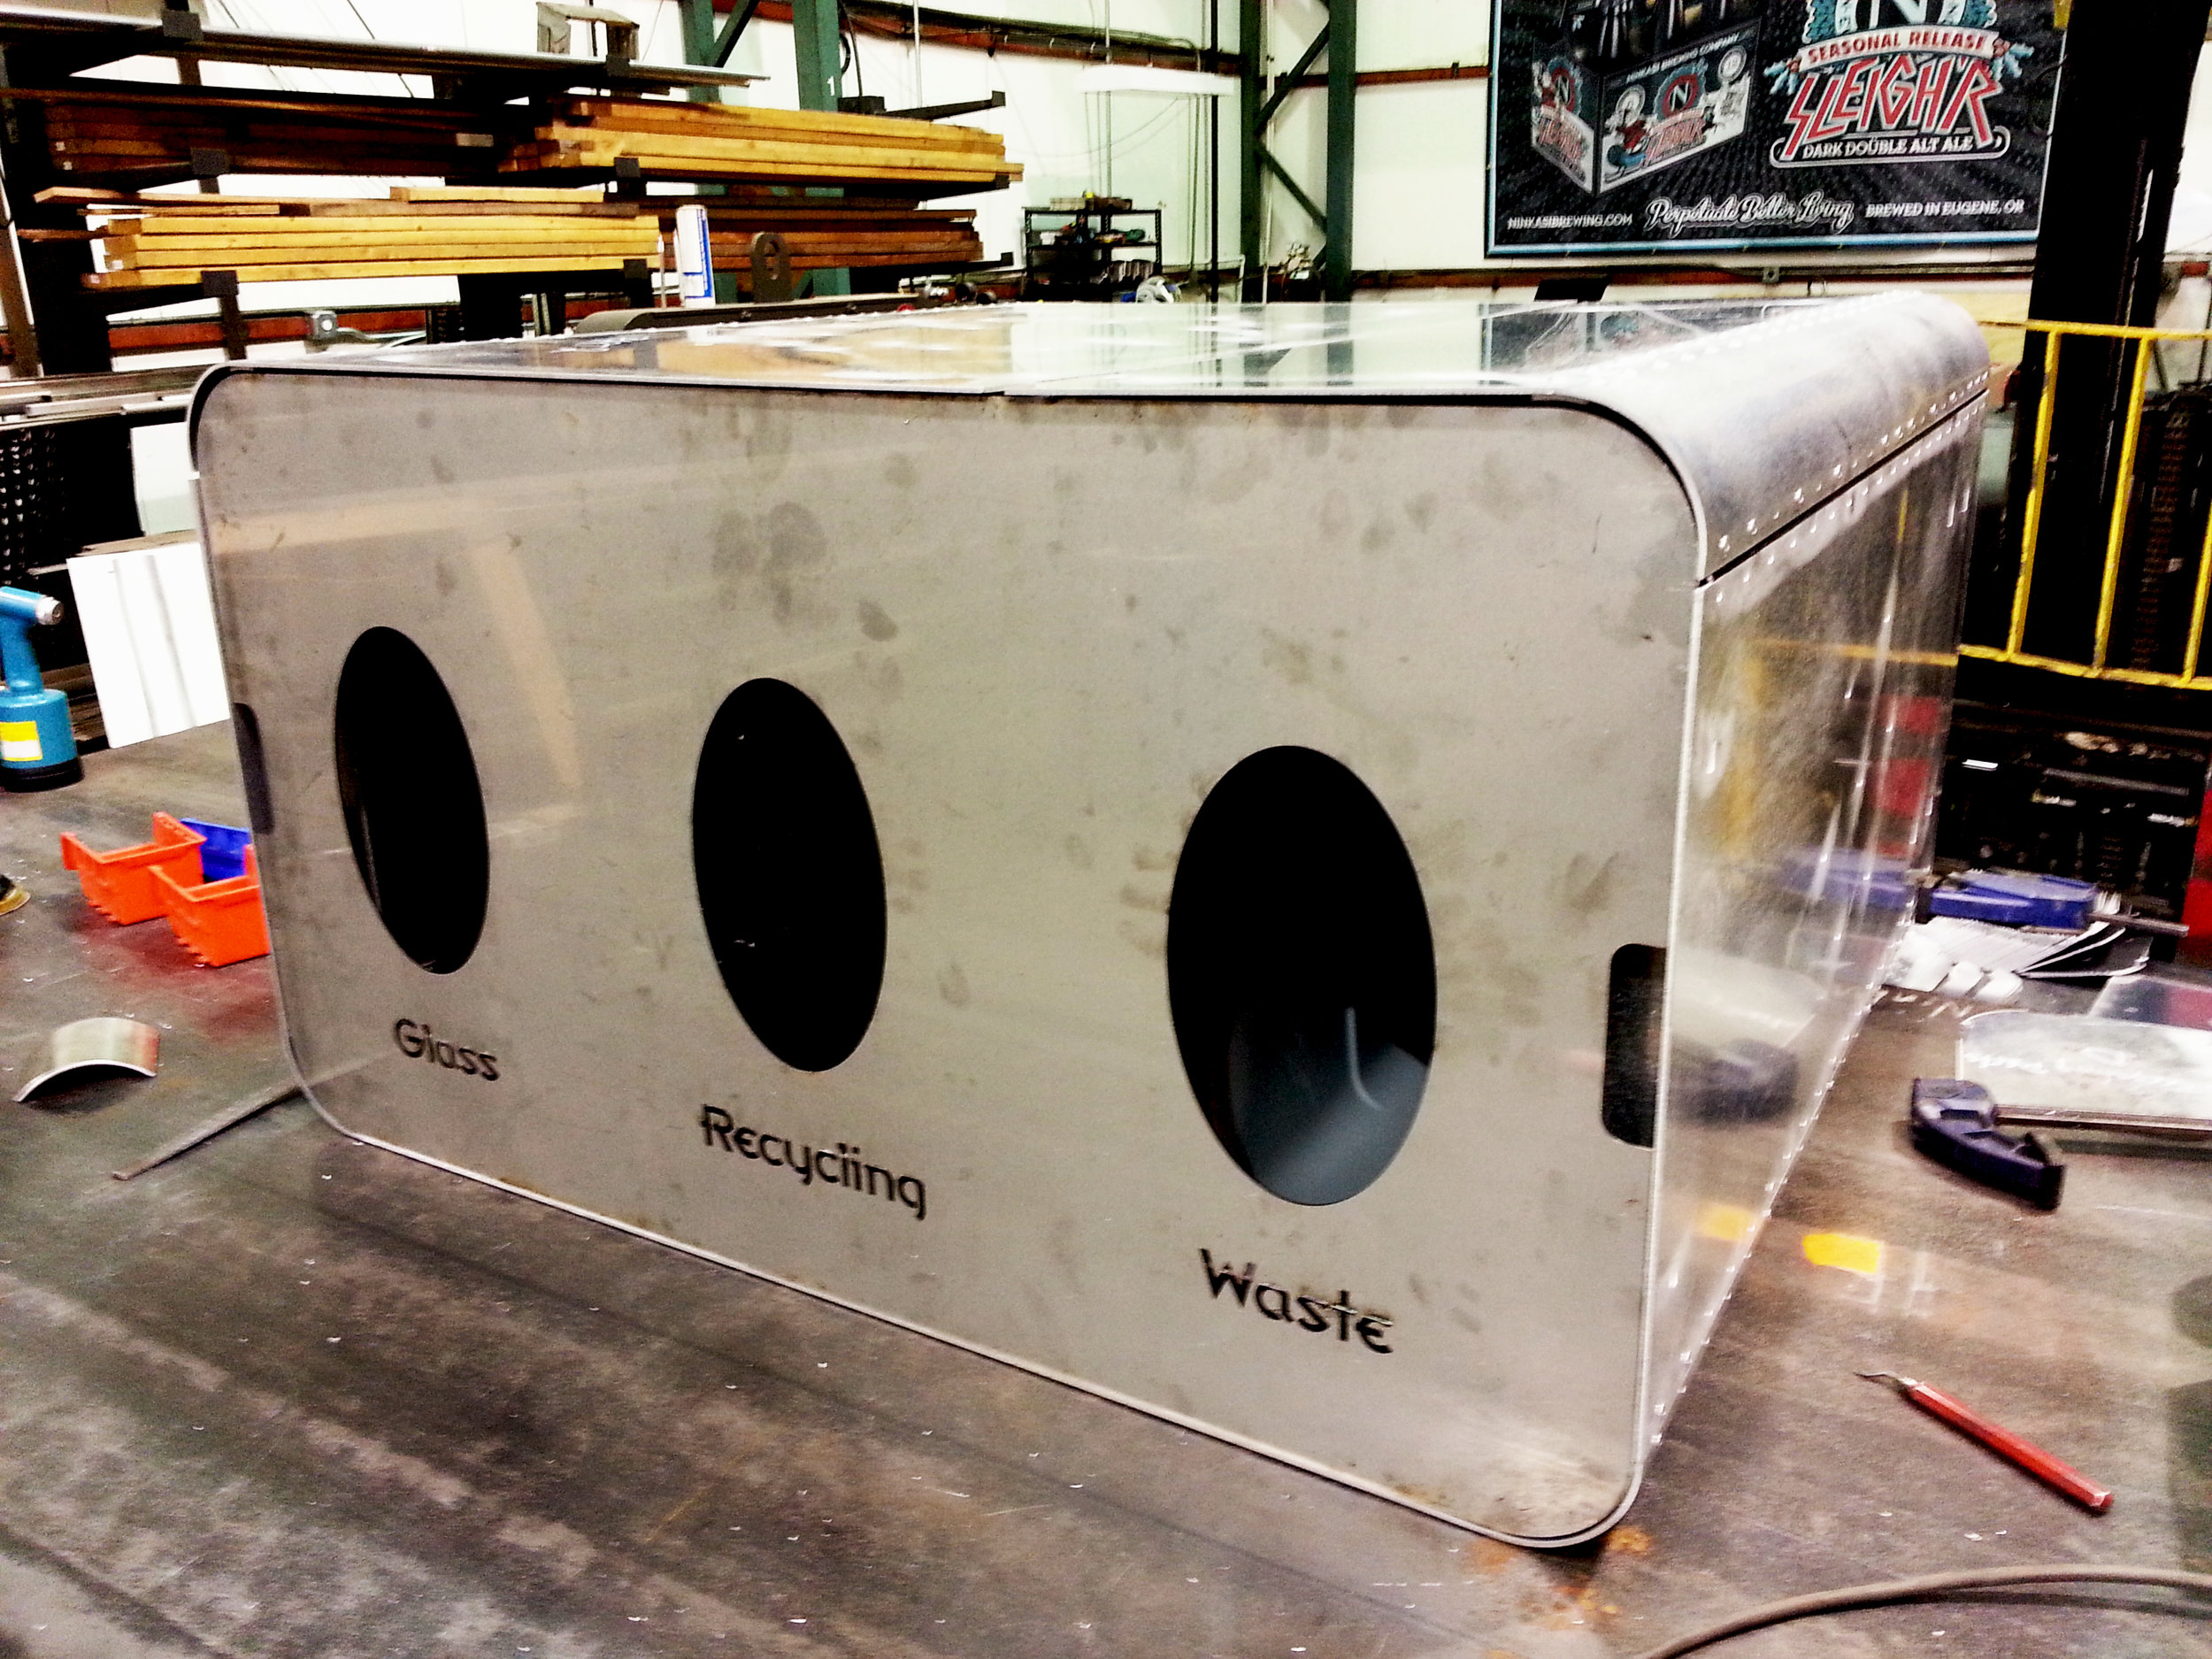 Fabrication of Ninkasi Brewing Branded Recycling Bins